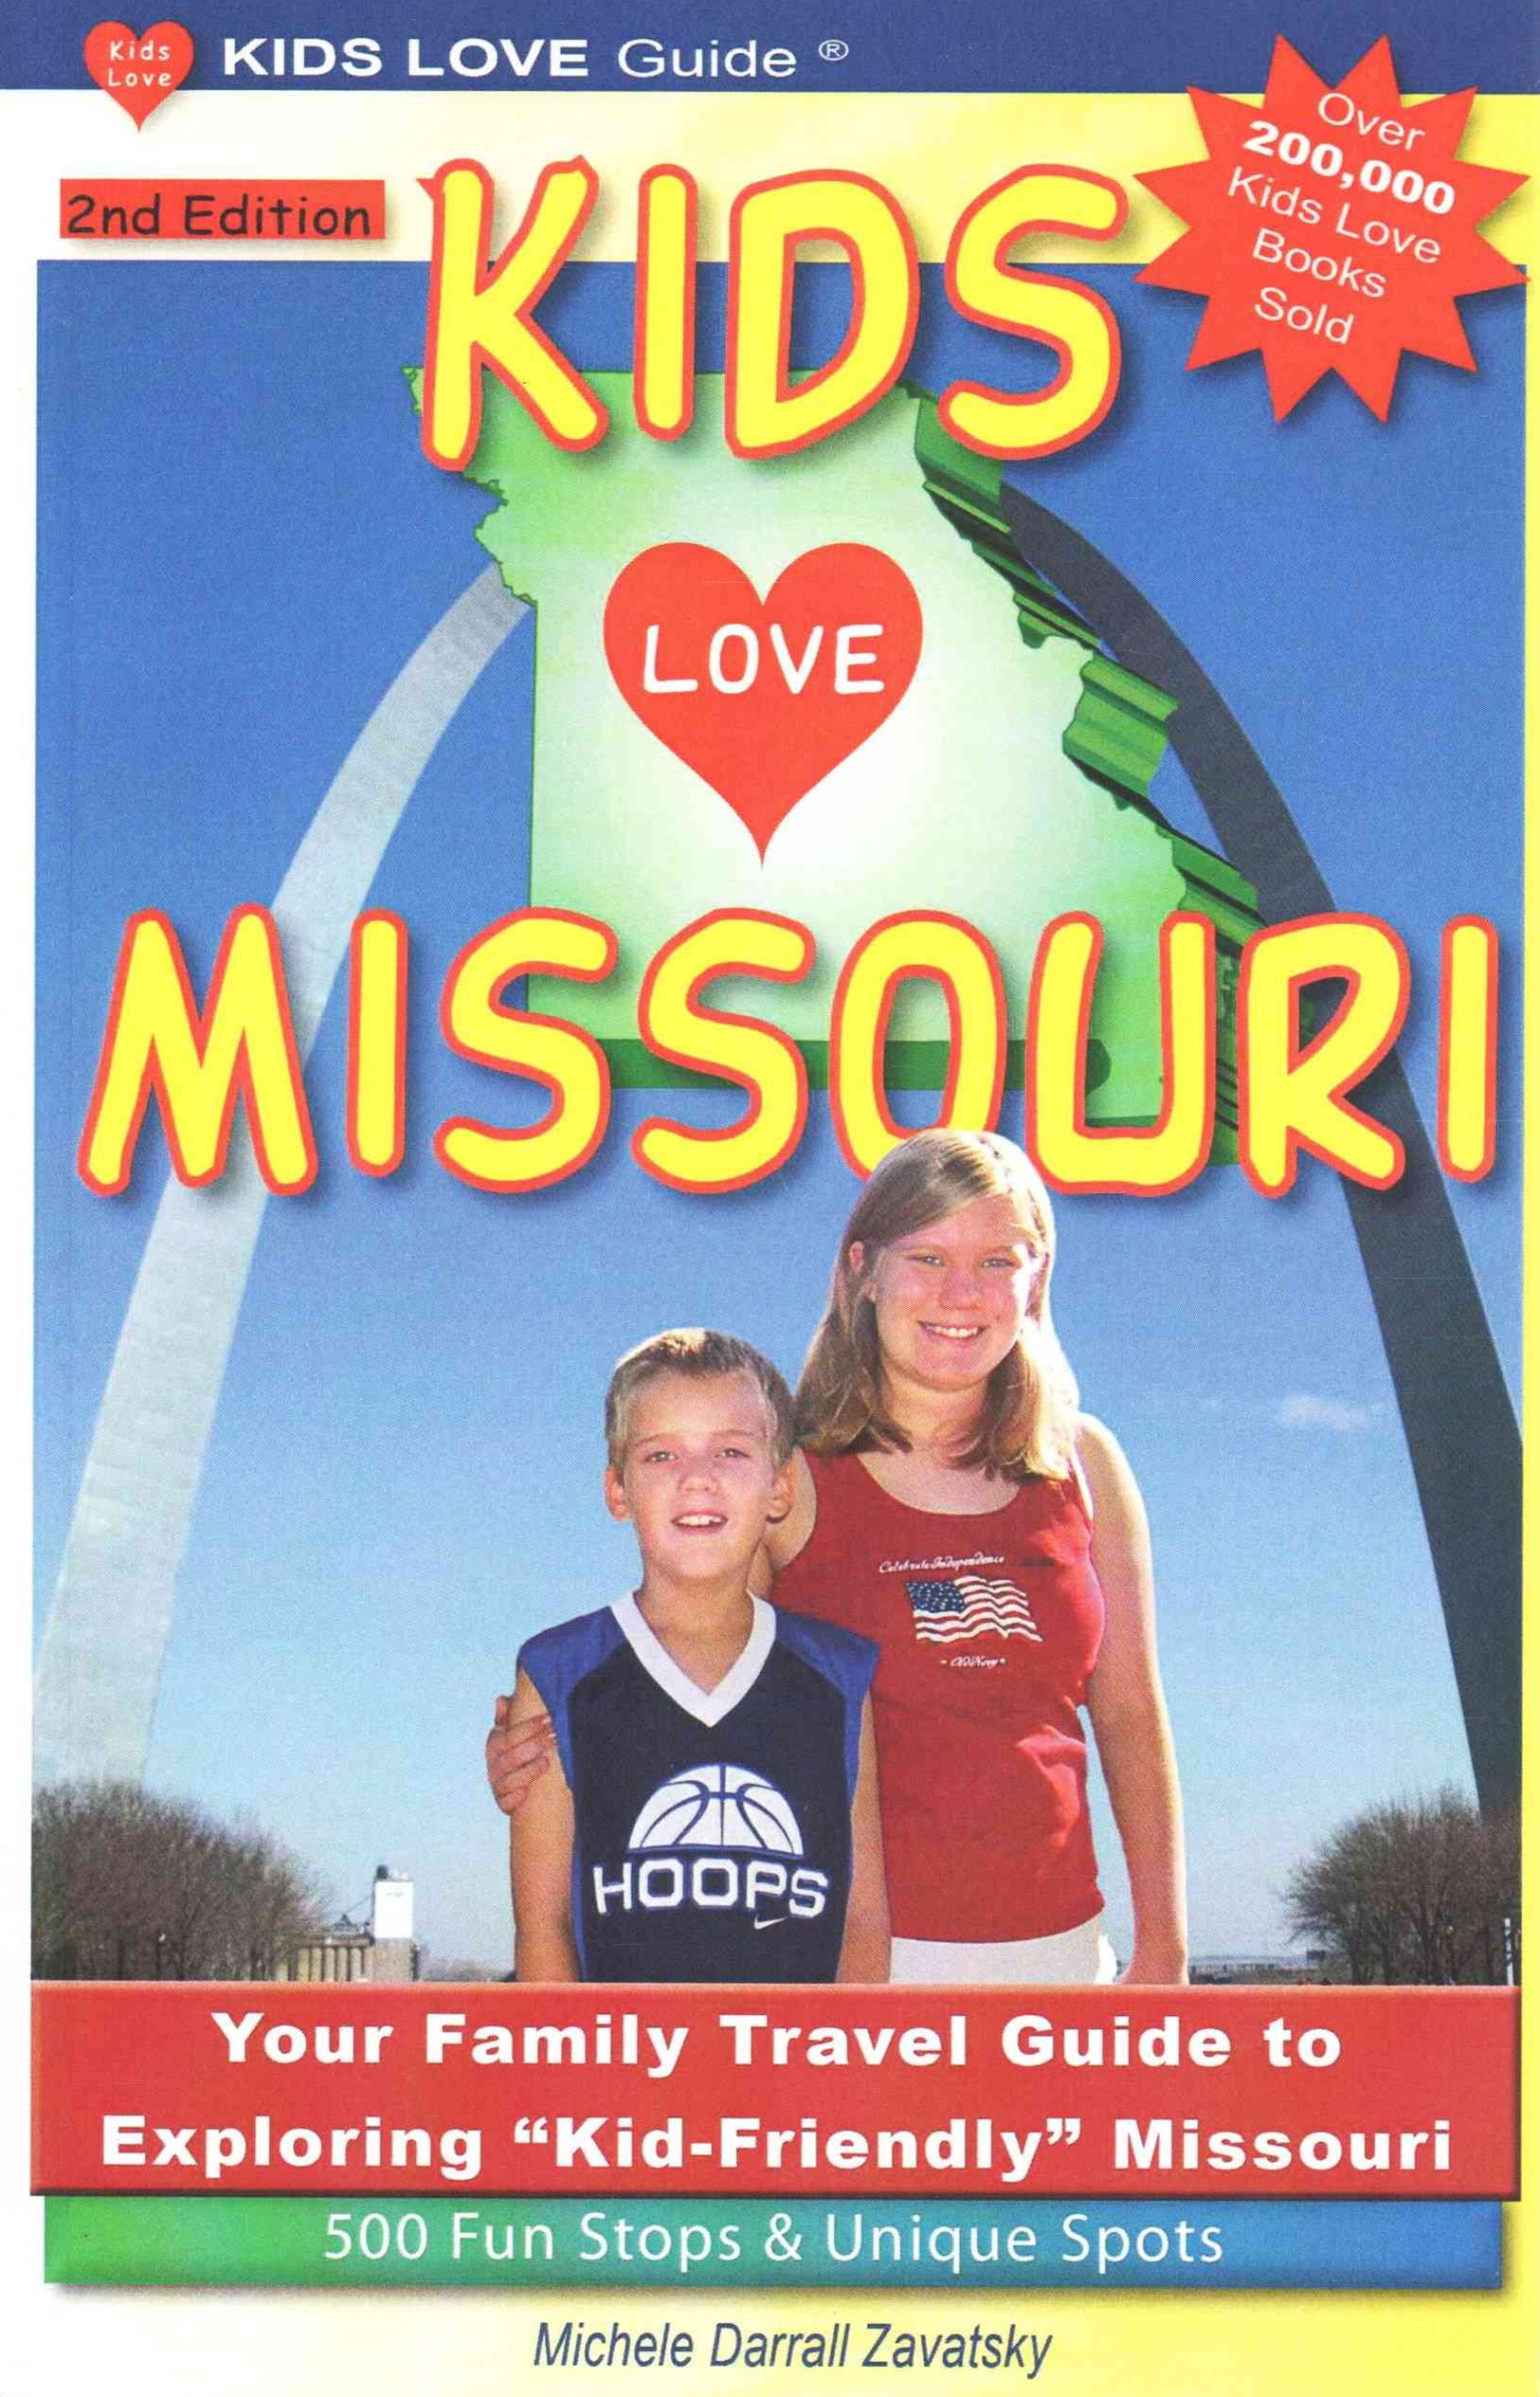 KIDS LOVE MISSOURI, 2nd Edition